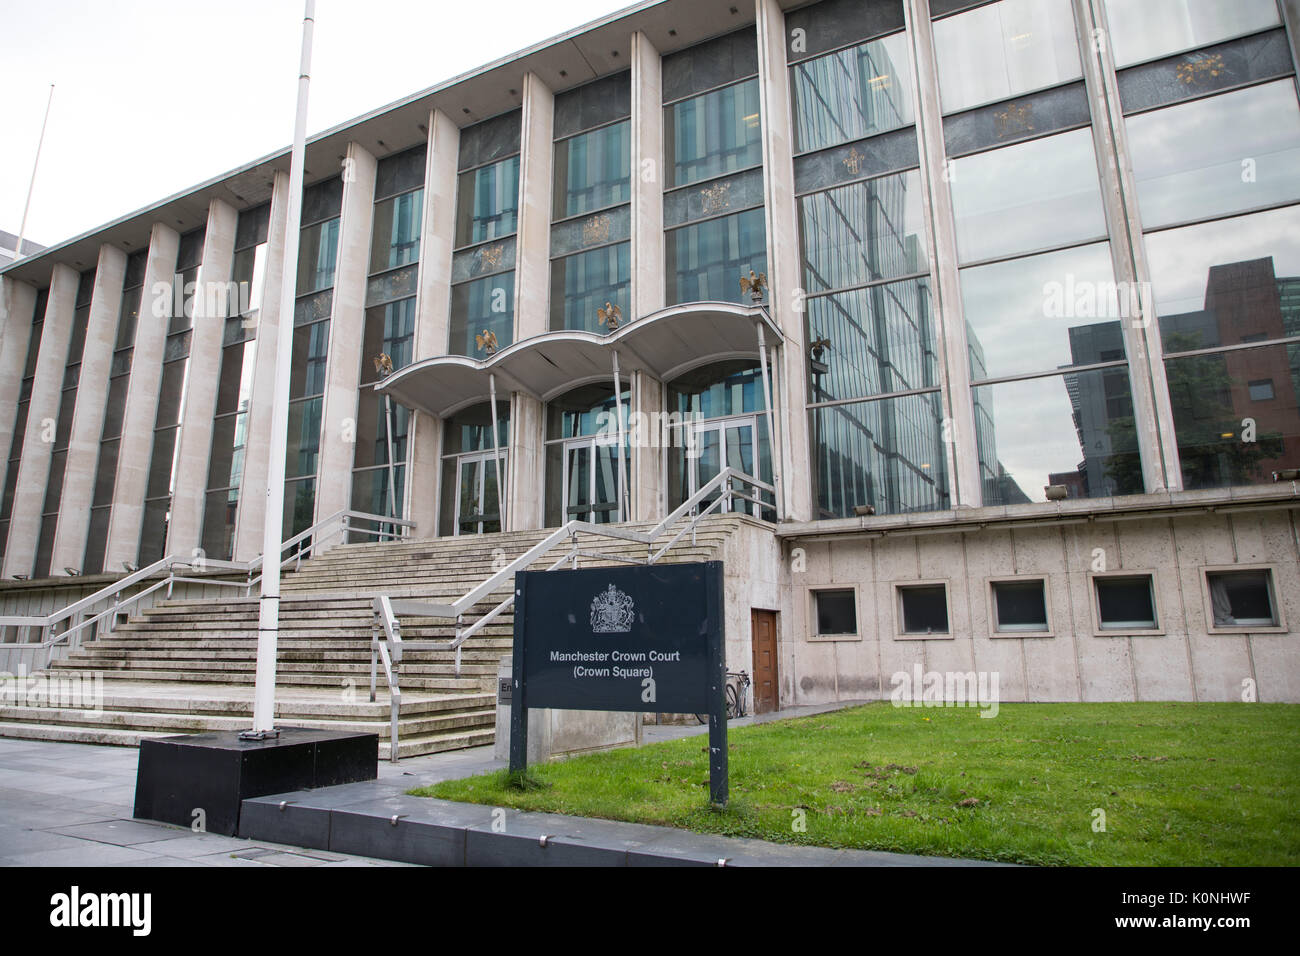 A view of Manchester Crown Court Stock Photo: 155368347 - Alamy